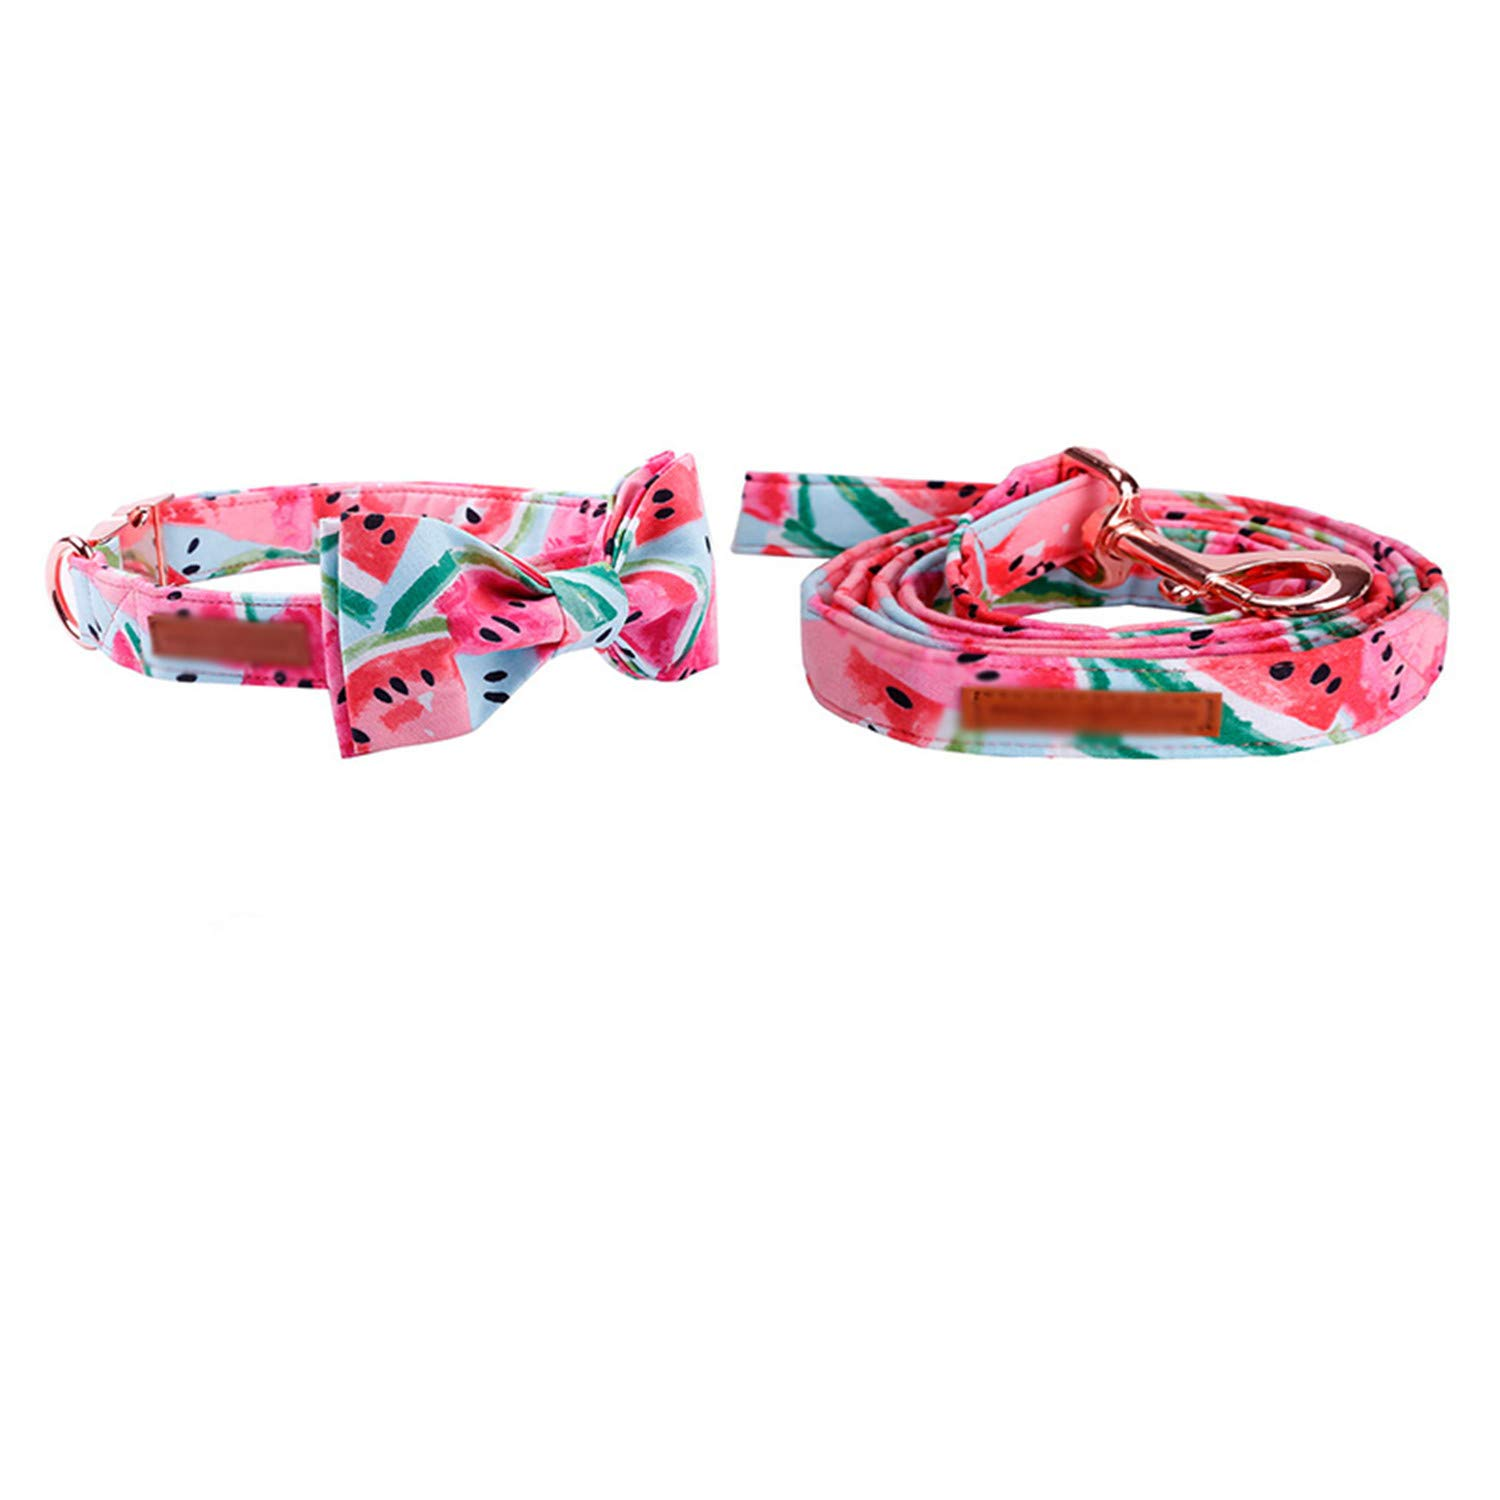 Collar bow and leash L collar bow and leash L Dog and Leash Set with